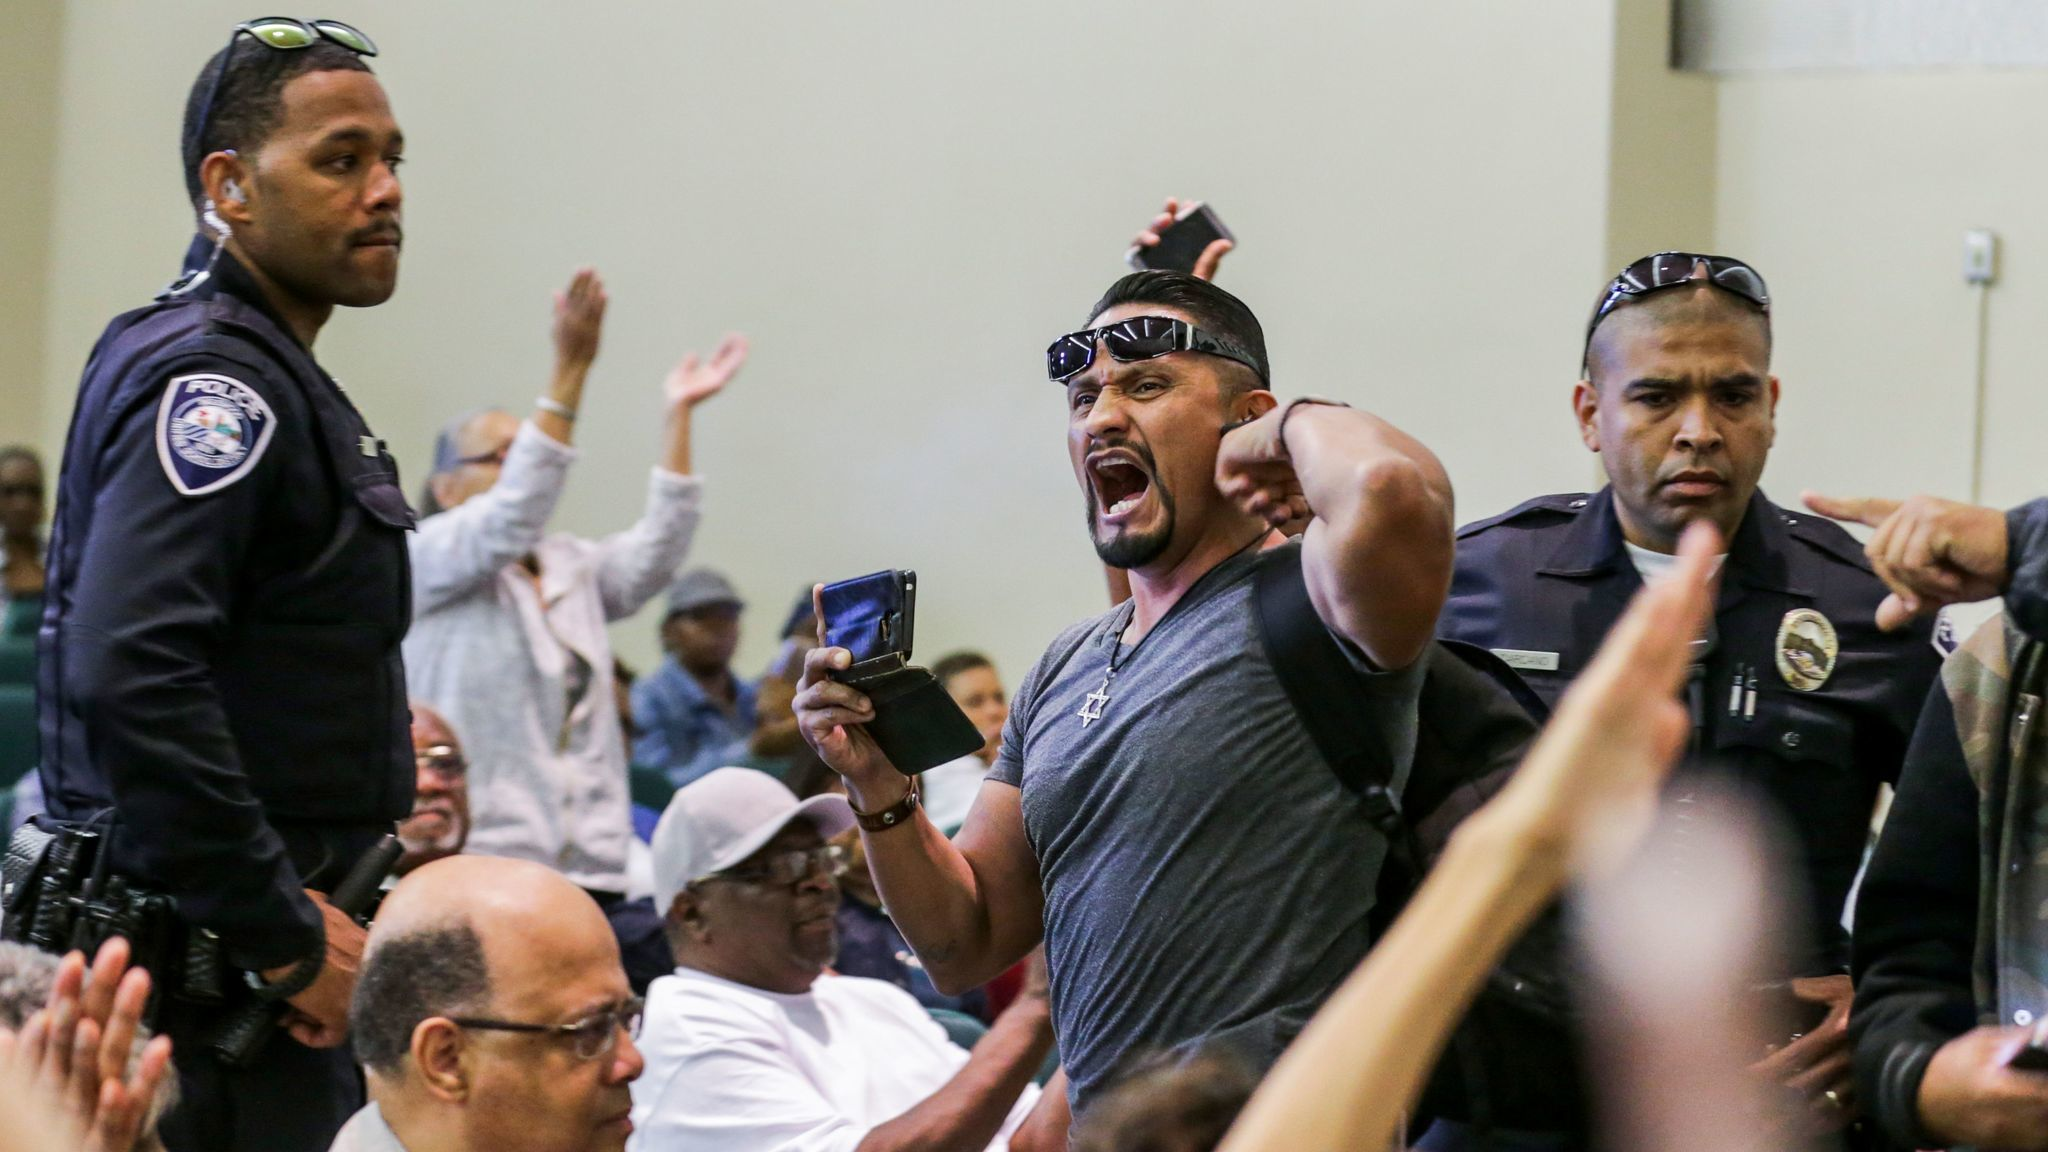 Harim Uzziel, center, a friend of Schaper's and fellow member of the L.A. County for Trump coalition, is escorted from a town hall meeting held by Rep. Maxine Waters in Inglewood in May.